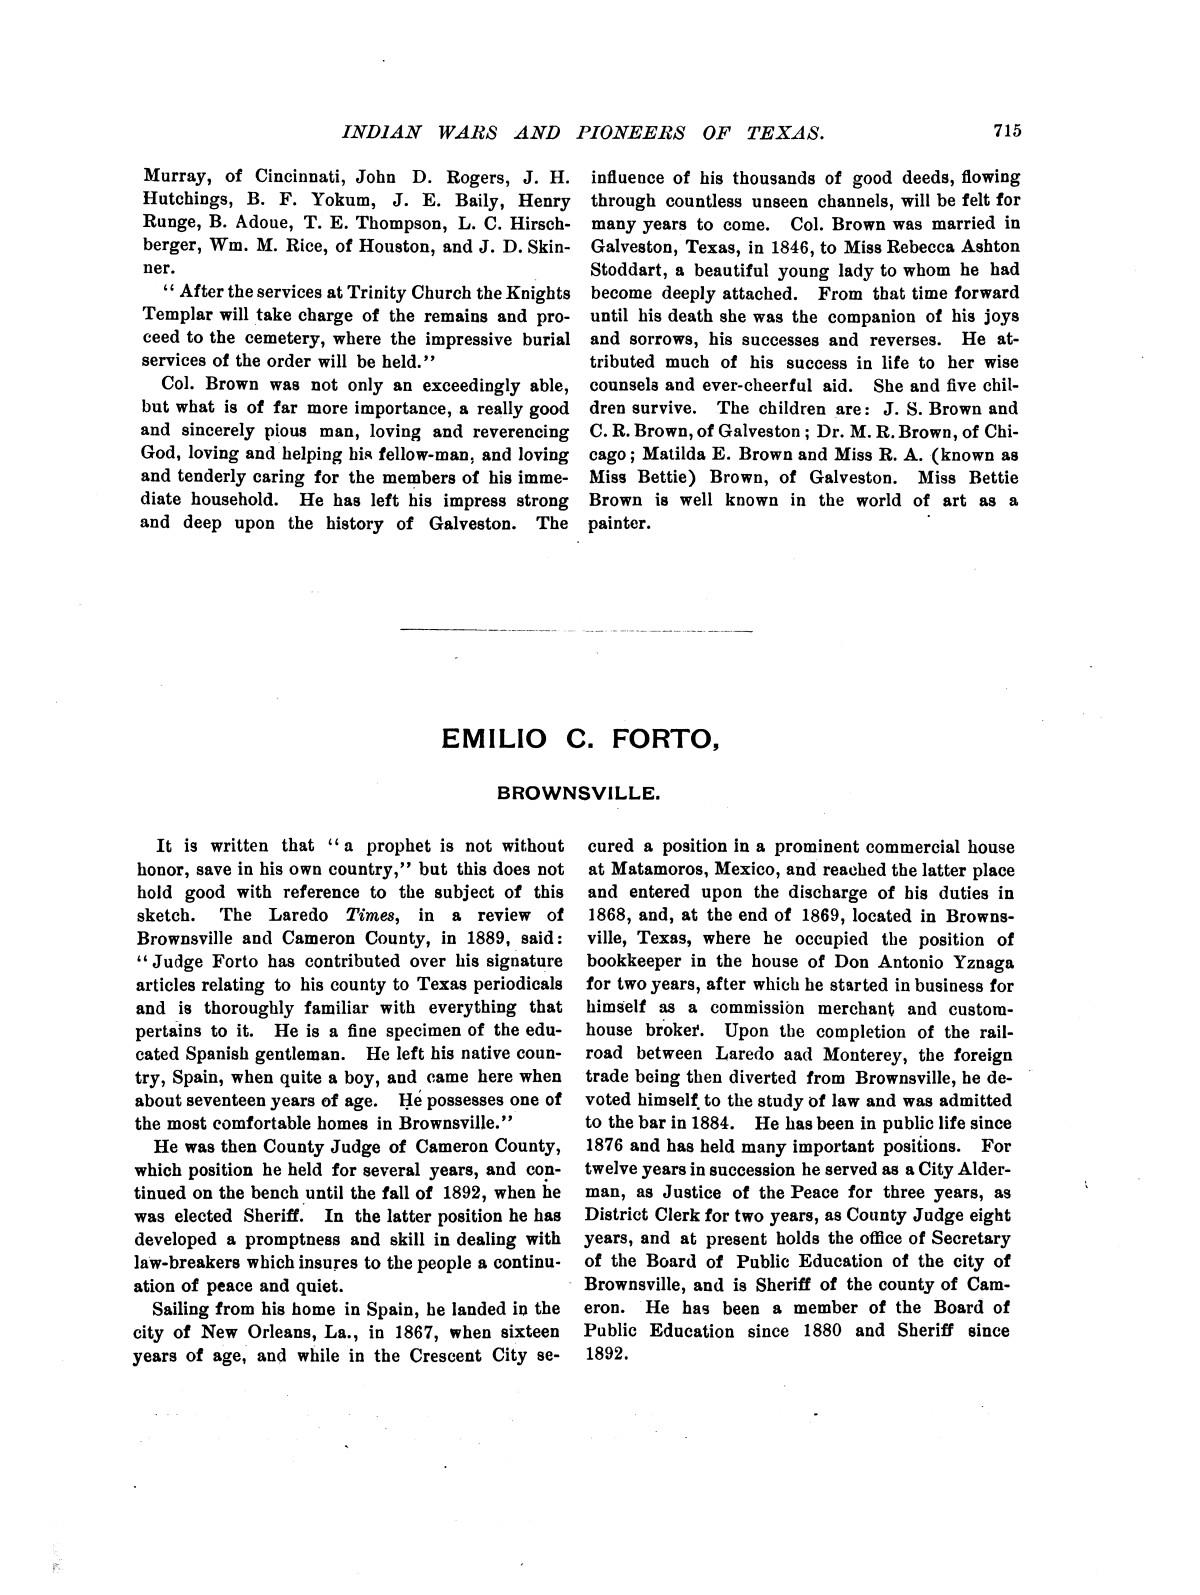 Indian wars and pioneers of Texas / by John Henry Brown.                                                                                                      [Sequence #]: 829 of 894